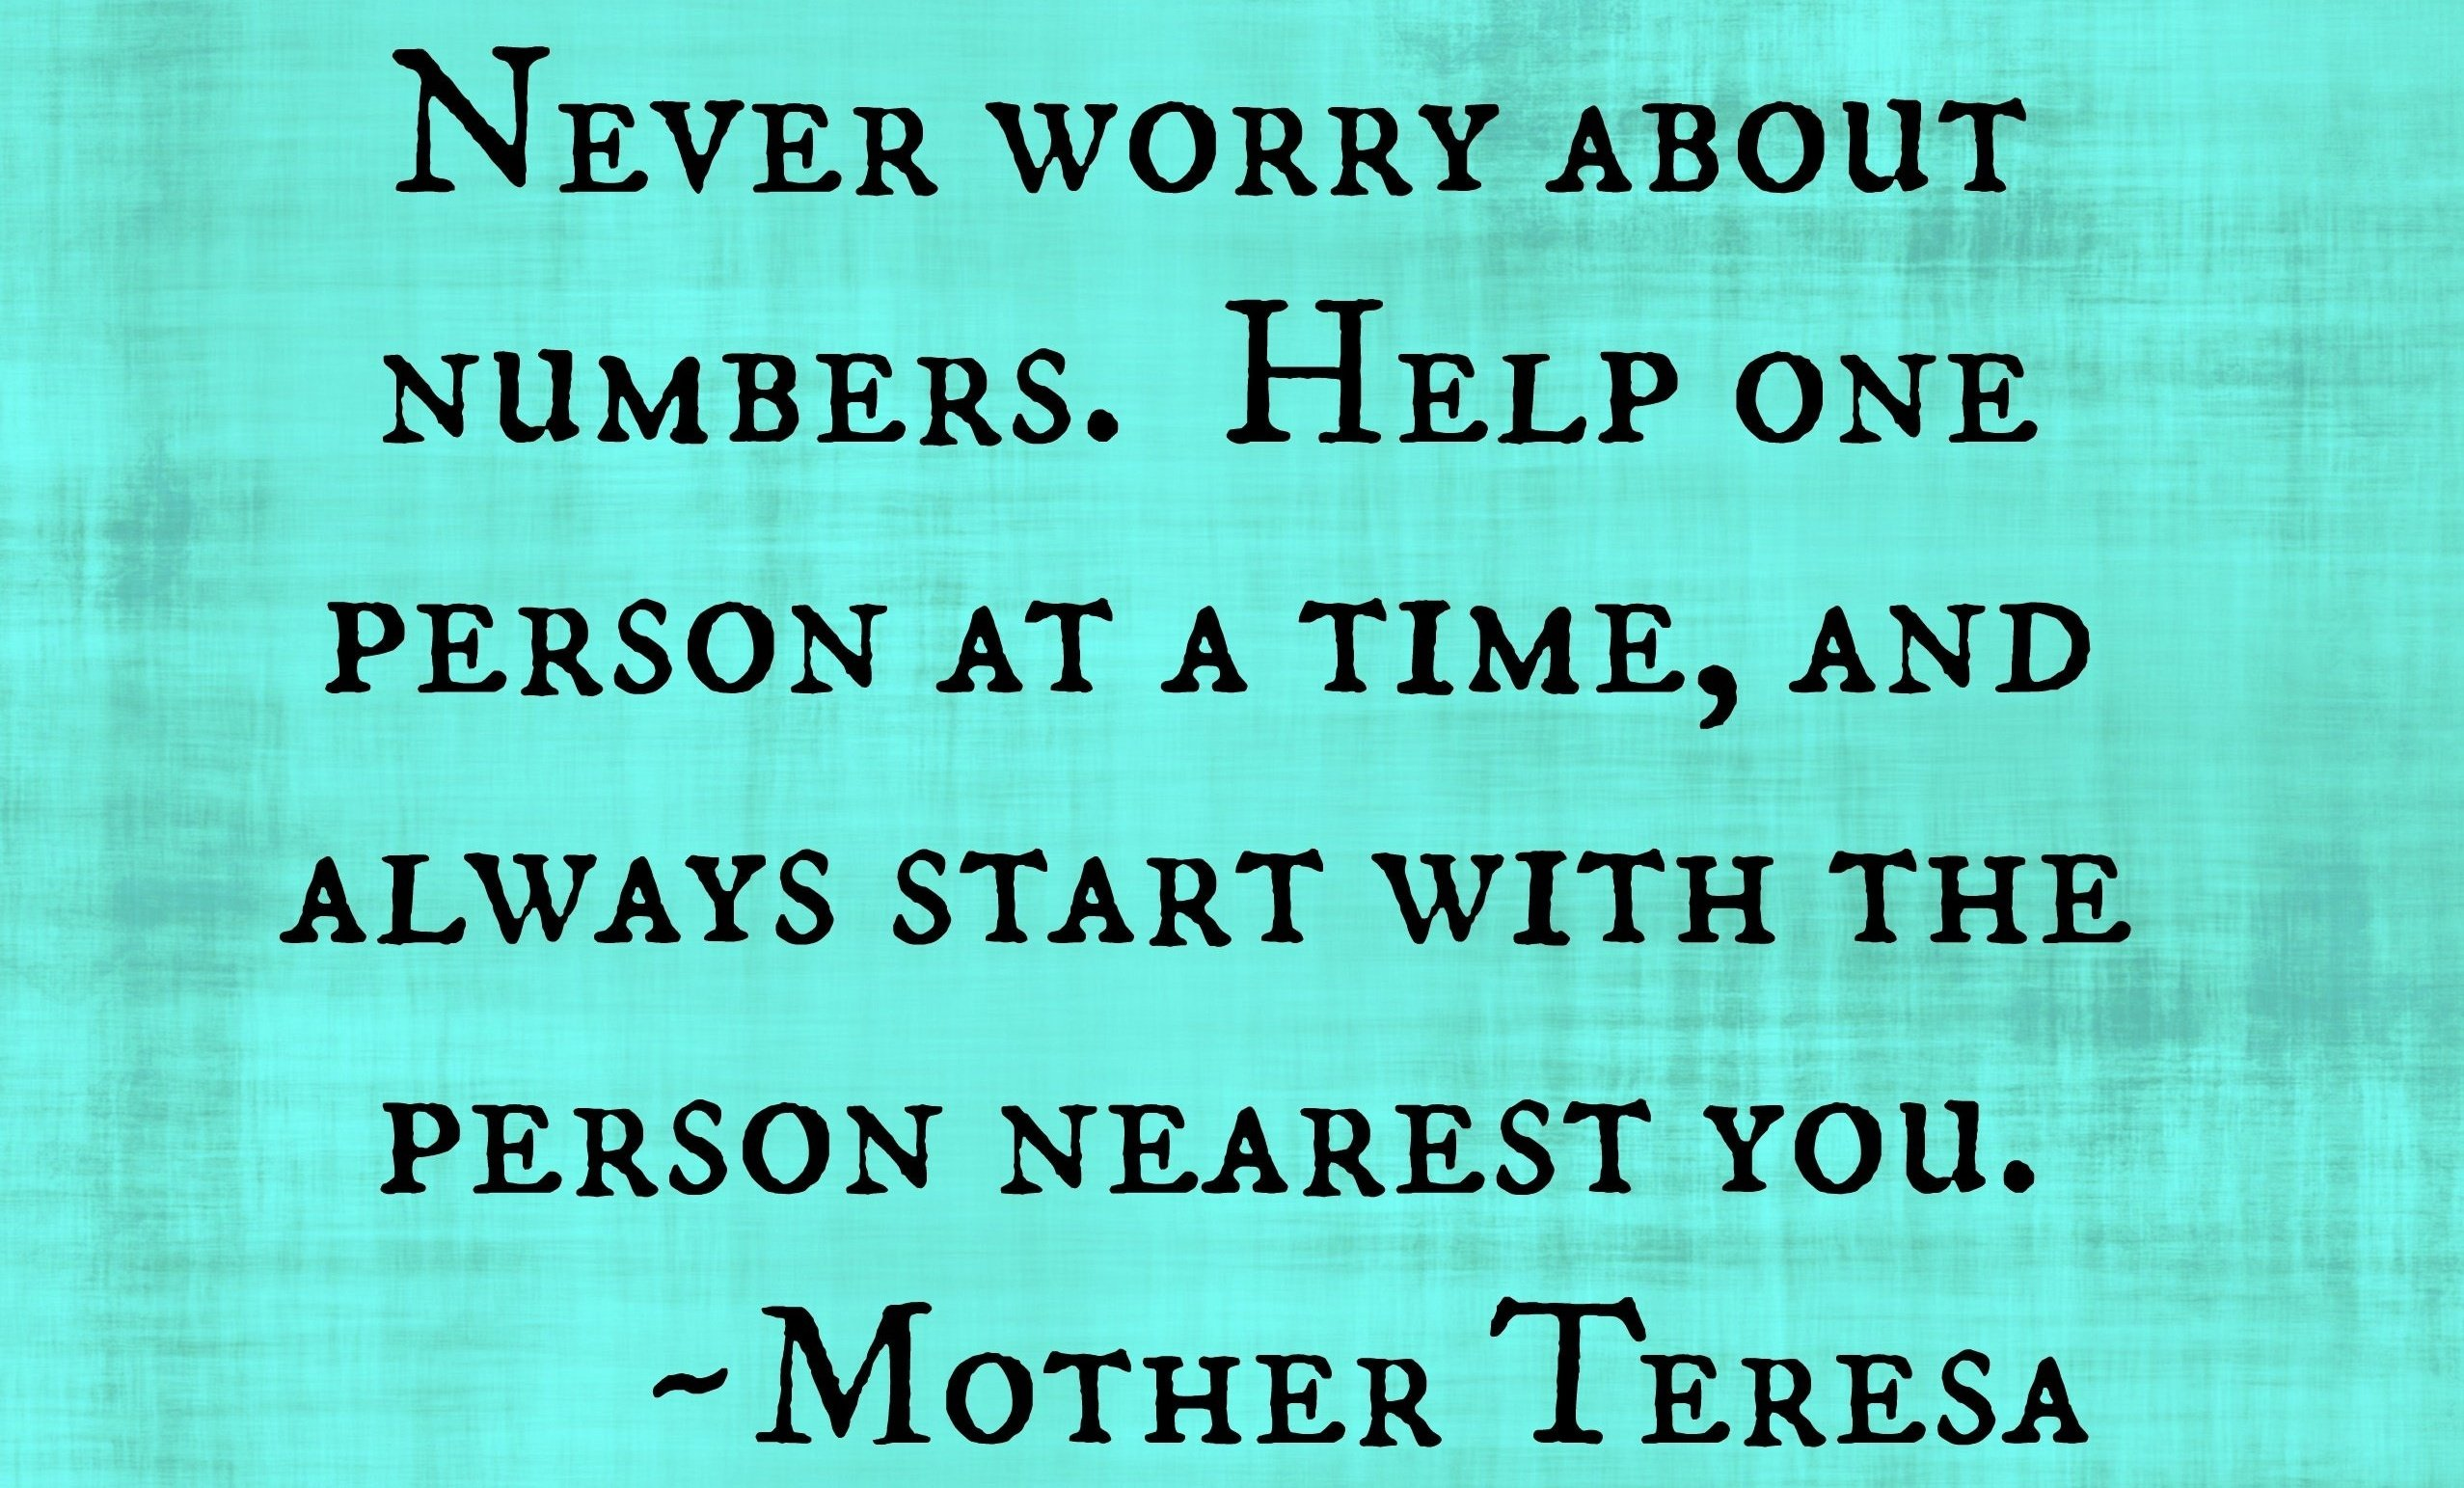 mother theresa quote-1-000161-edited